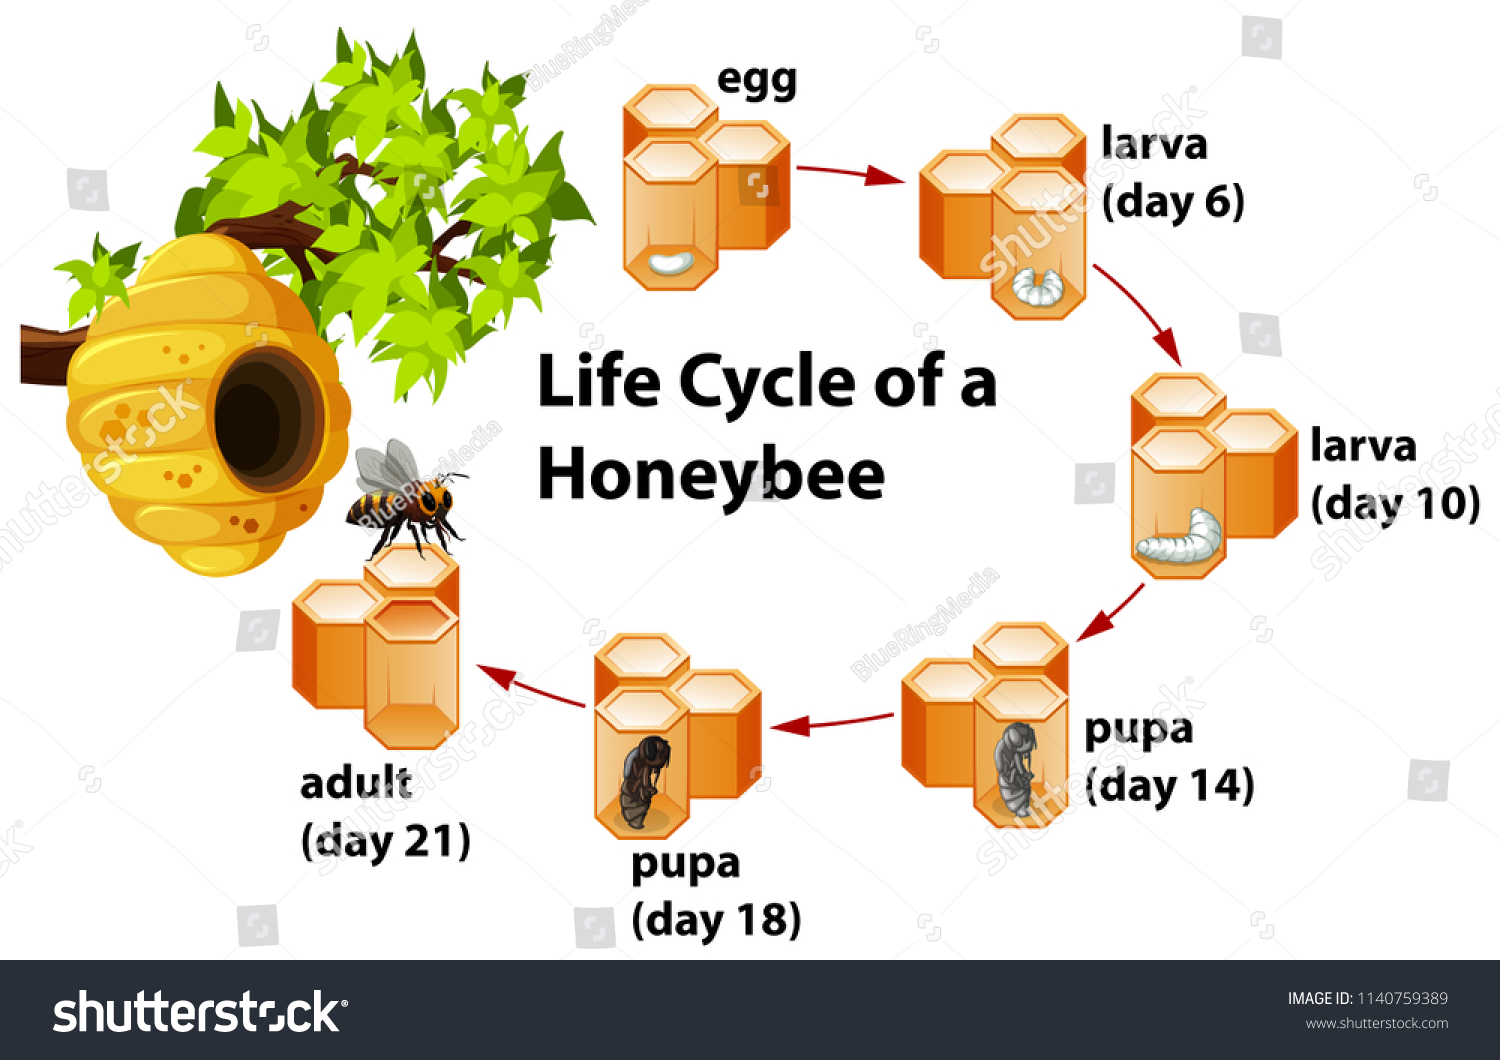 Life cycle honeybee illustration stock vector royalty free life cycle of a honeybee illustration ccuart Images